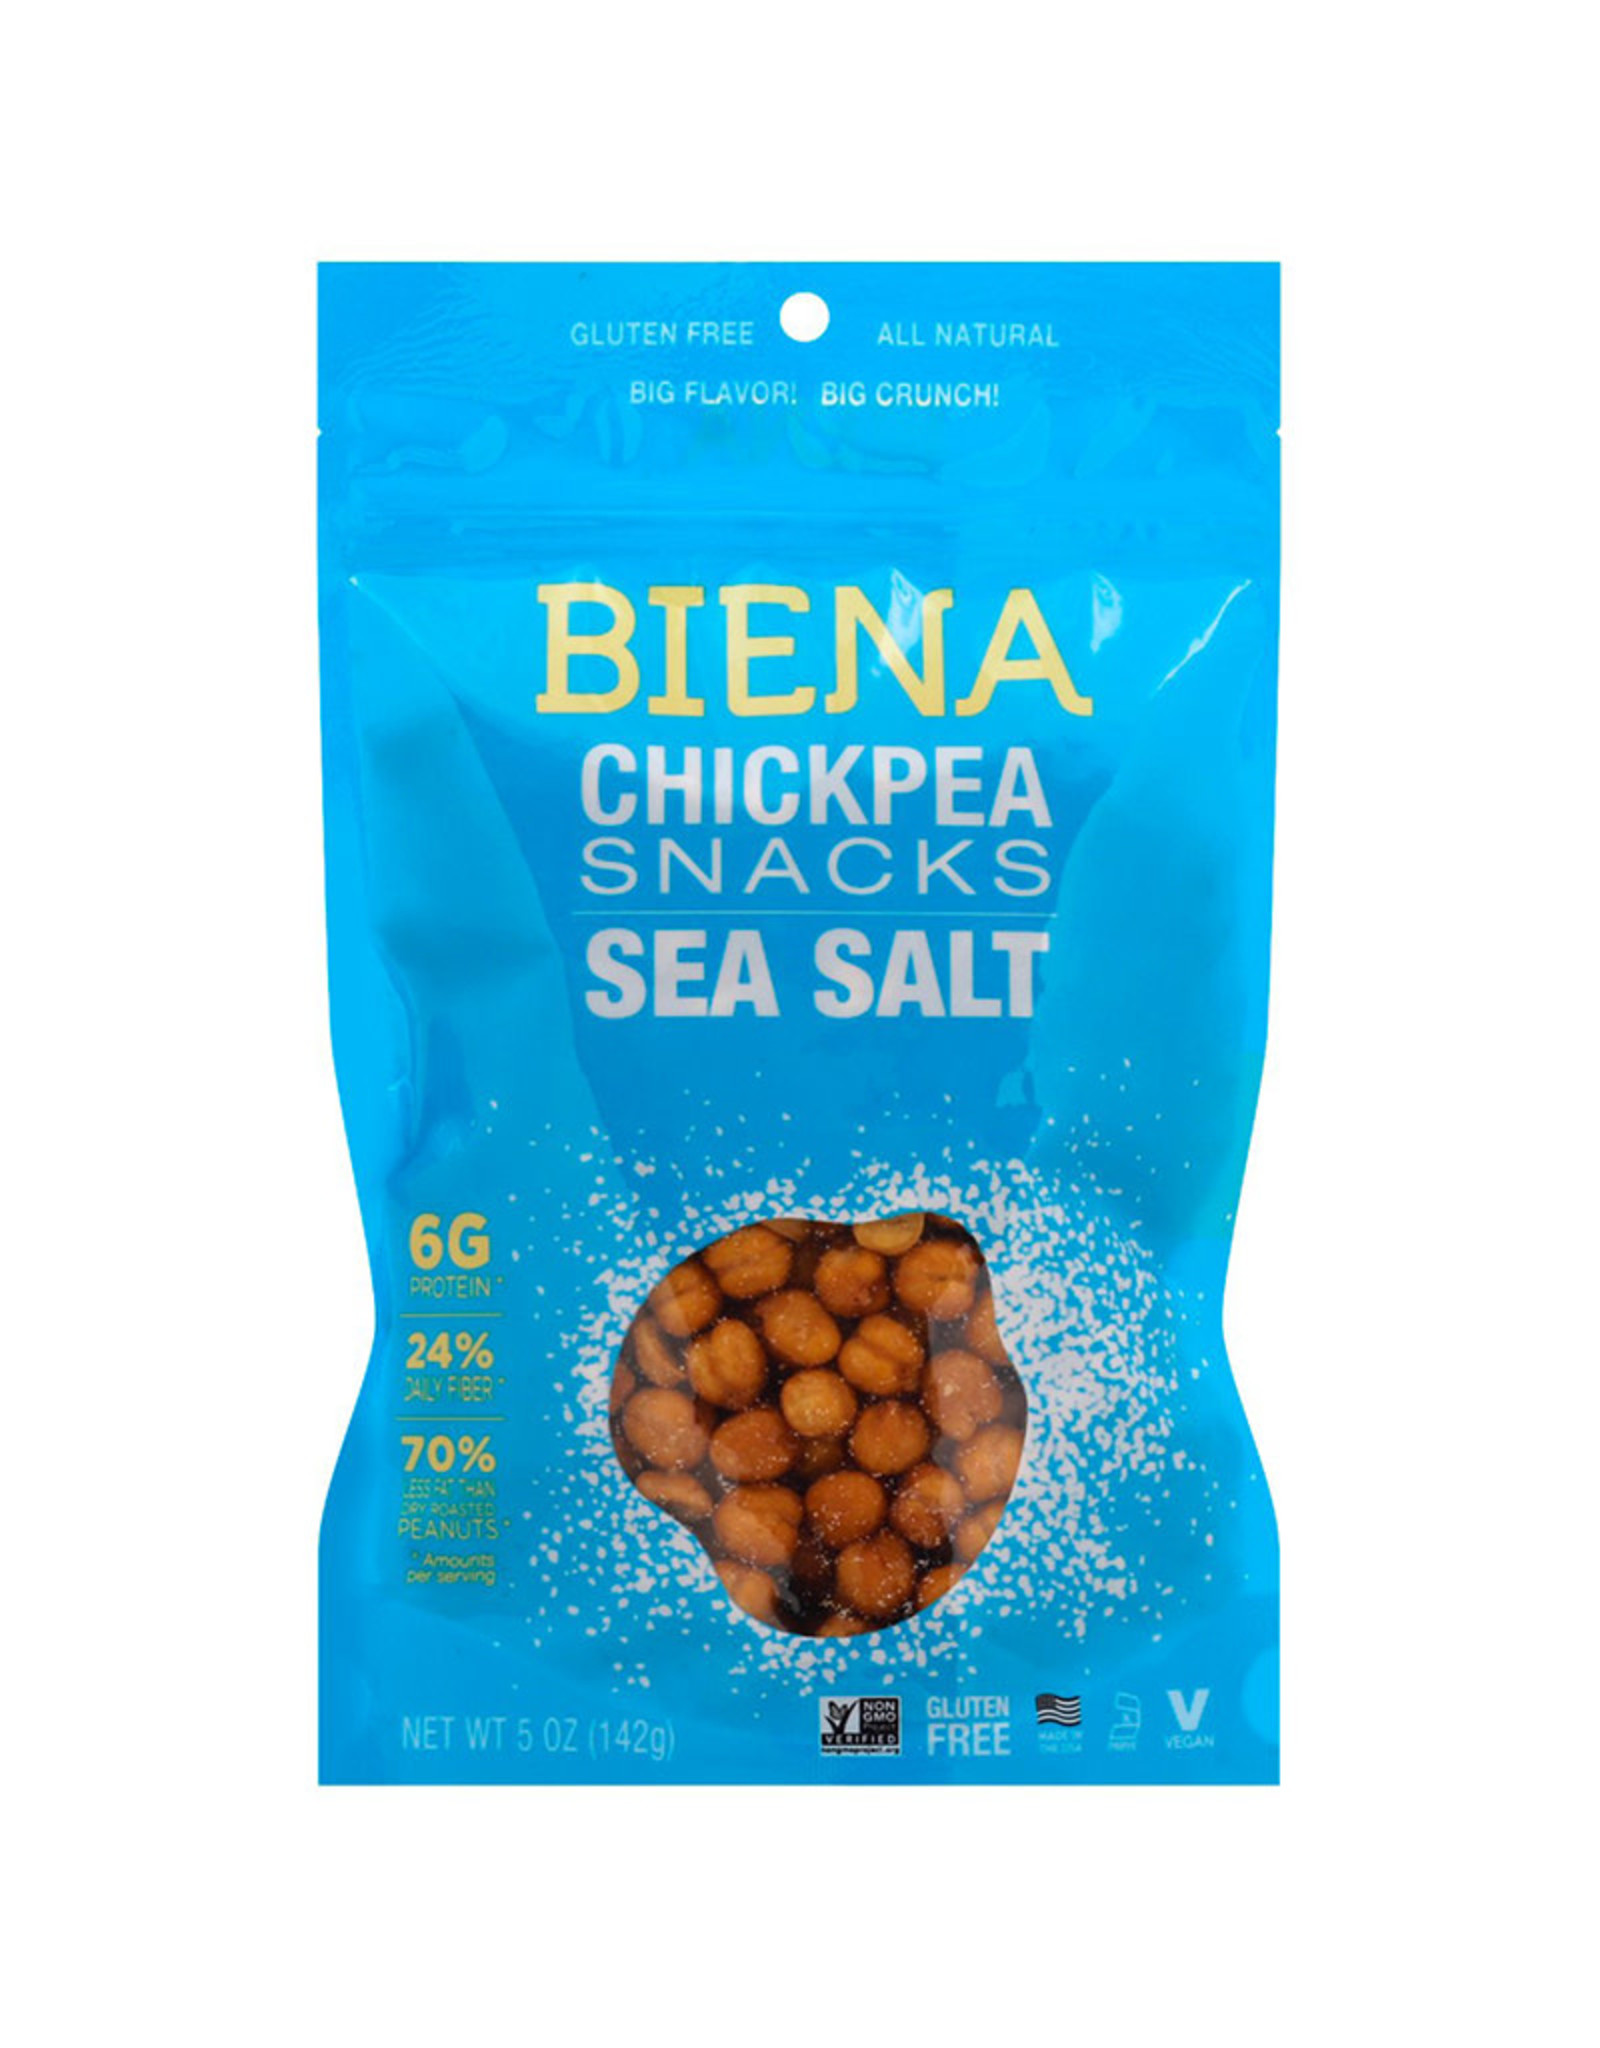 Biena Snacks Biena - Chickpea Snacks, Sea Salt